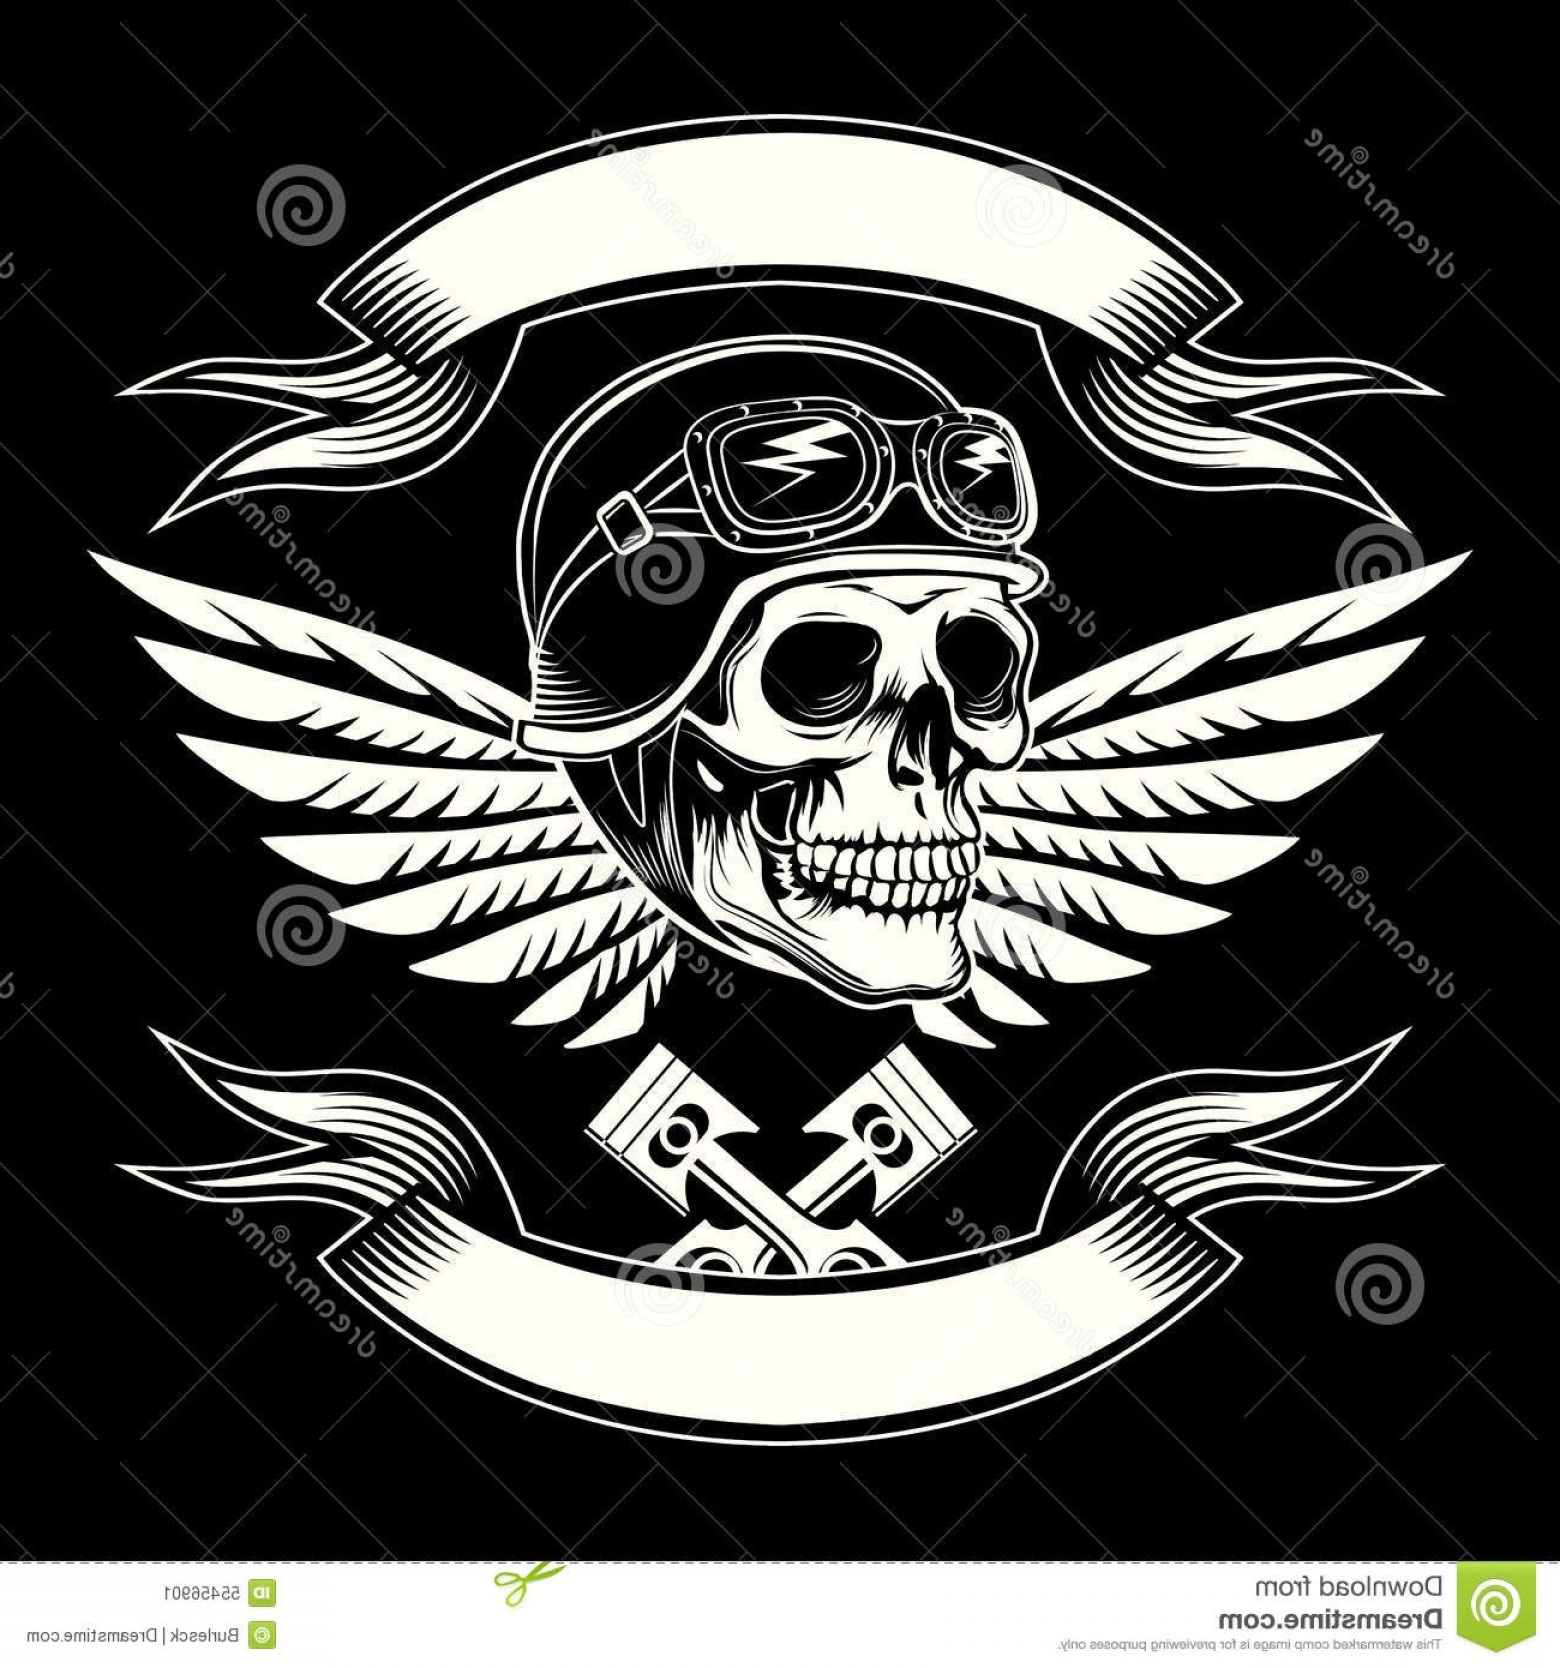 Harley -Davidson Skull Logo Vector: Stock Illustration Motor Skull Vector Graphic Motorcycle Vintage Design Biker Emblem Rider Insignia Icon Logo Tattoo Image